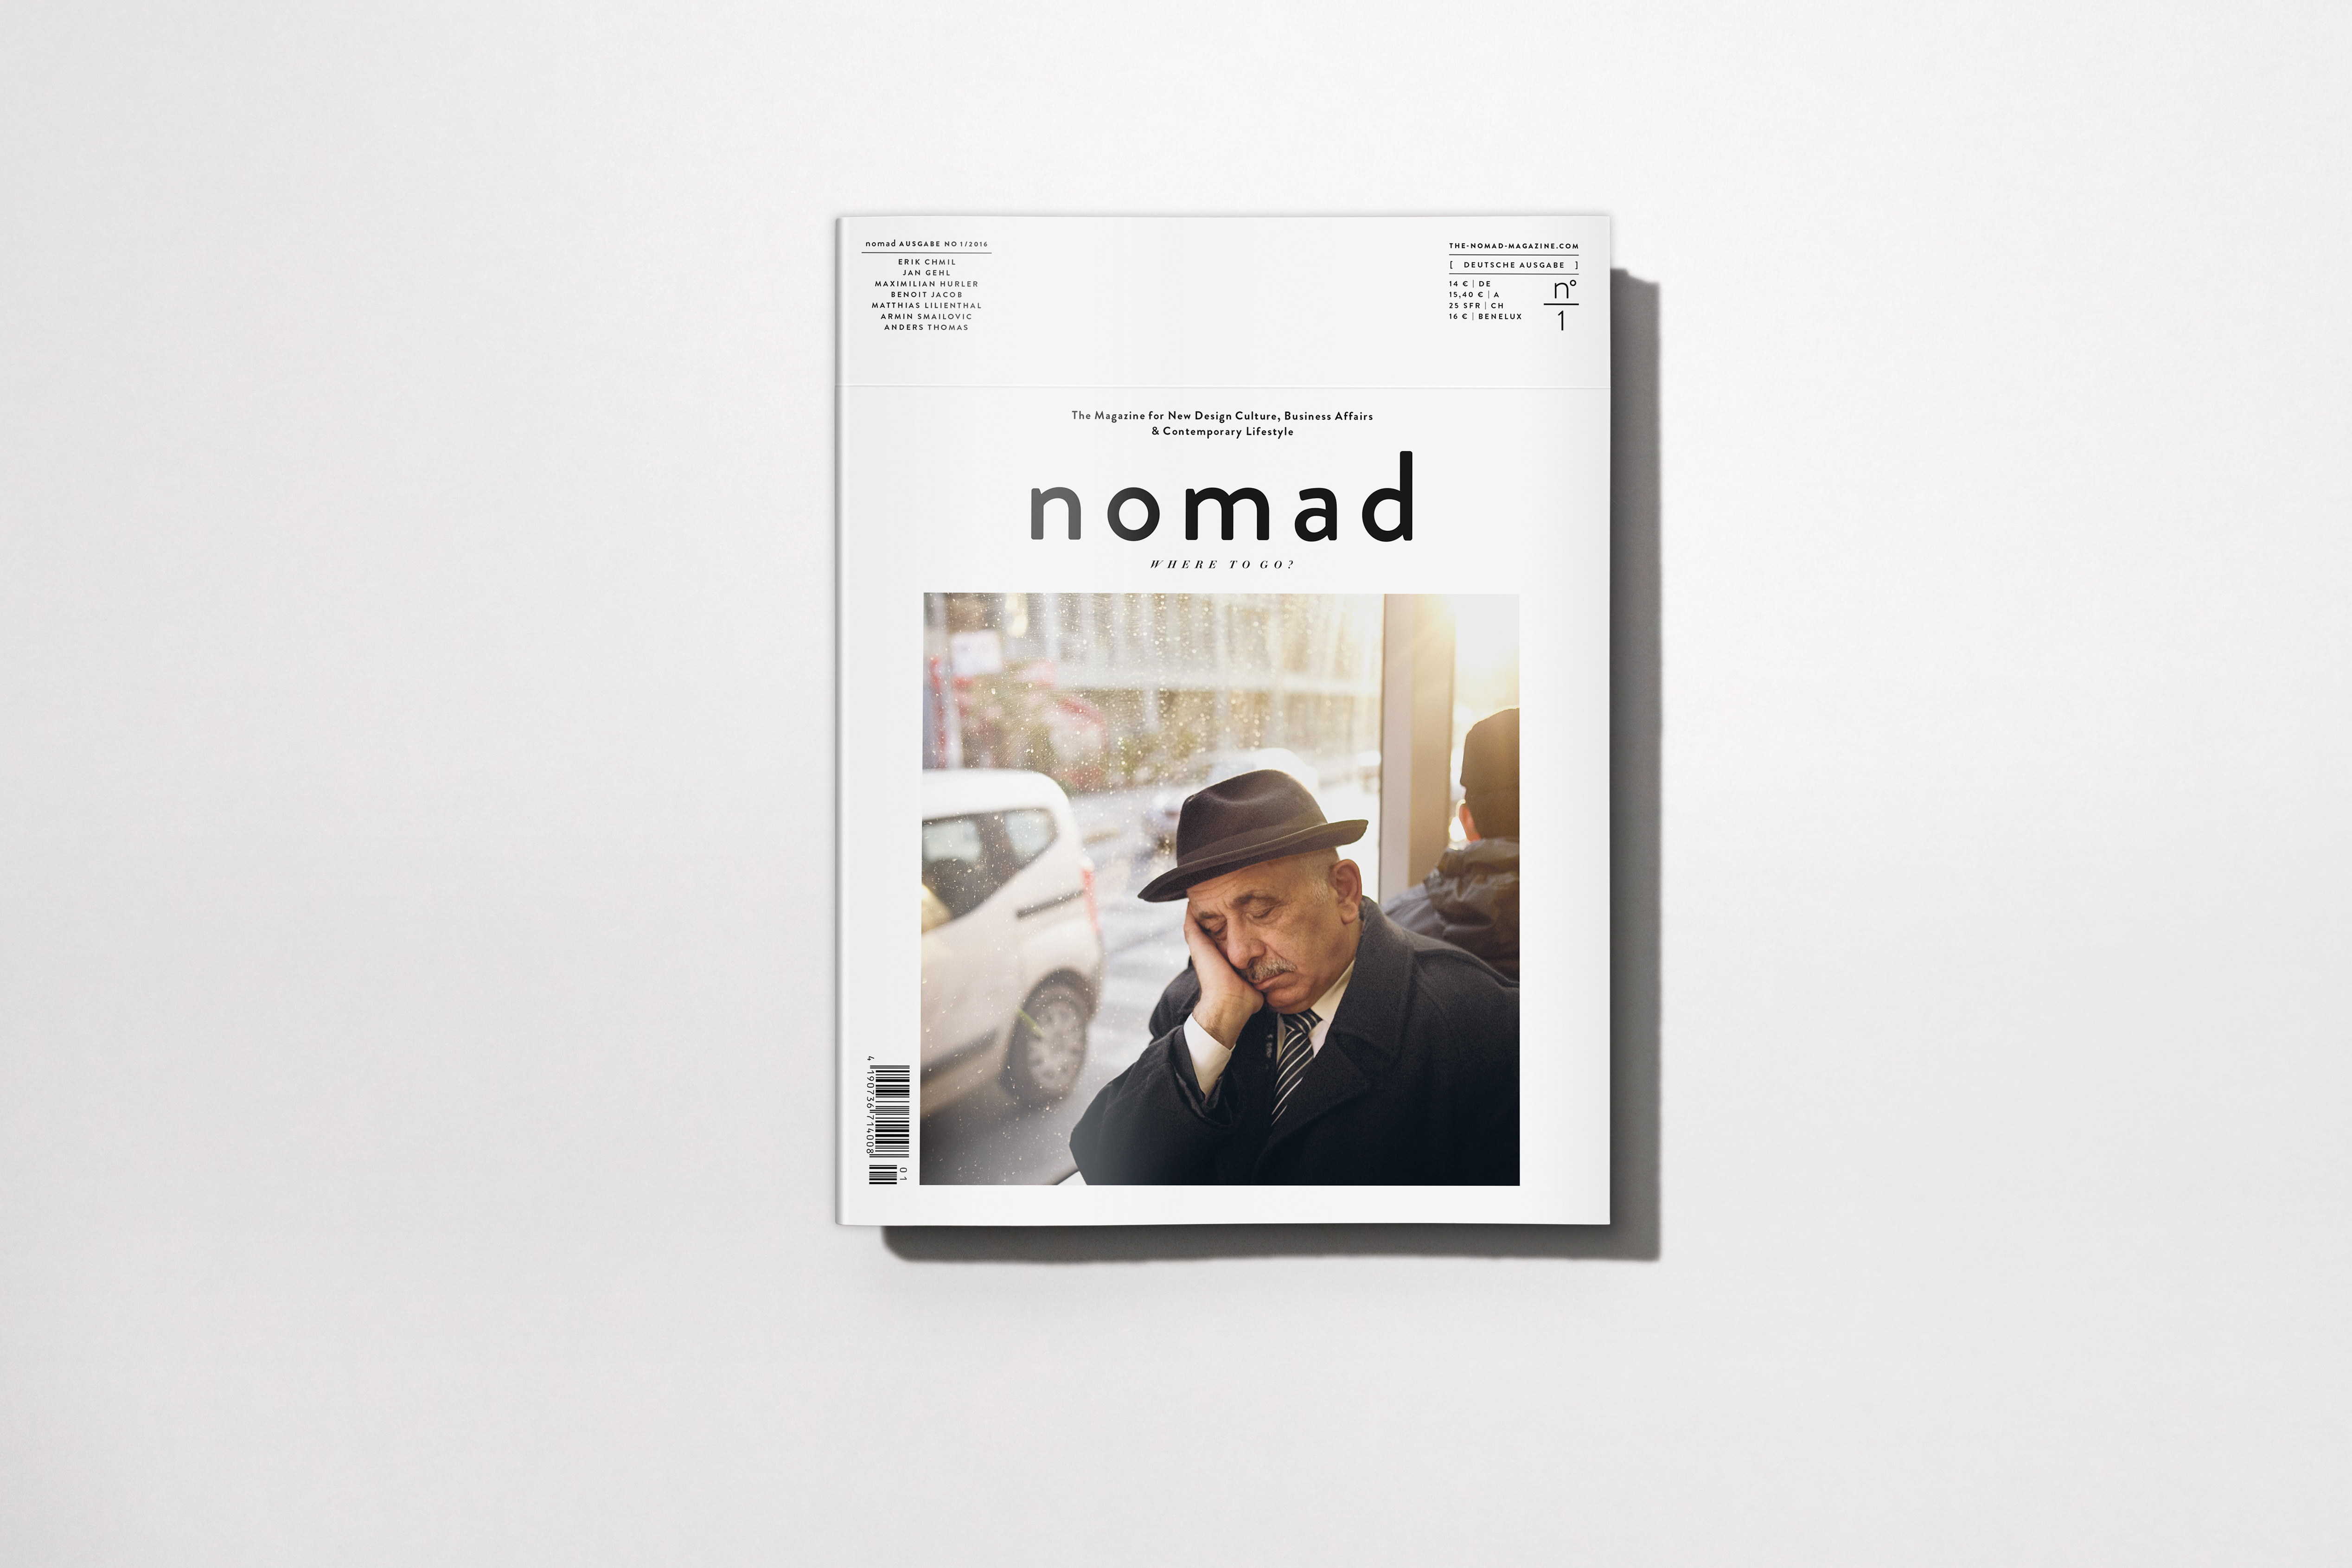 nomad-frontal